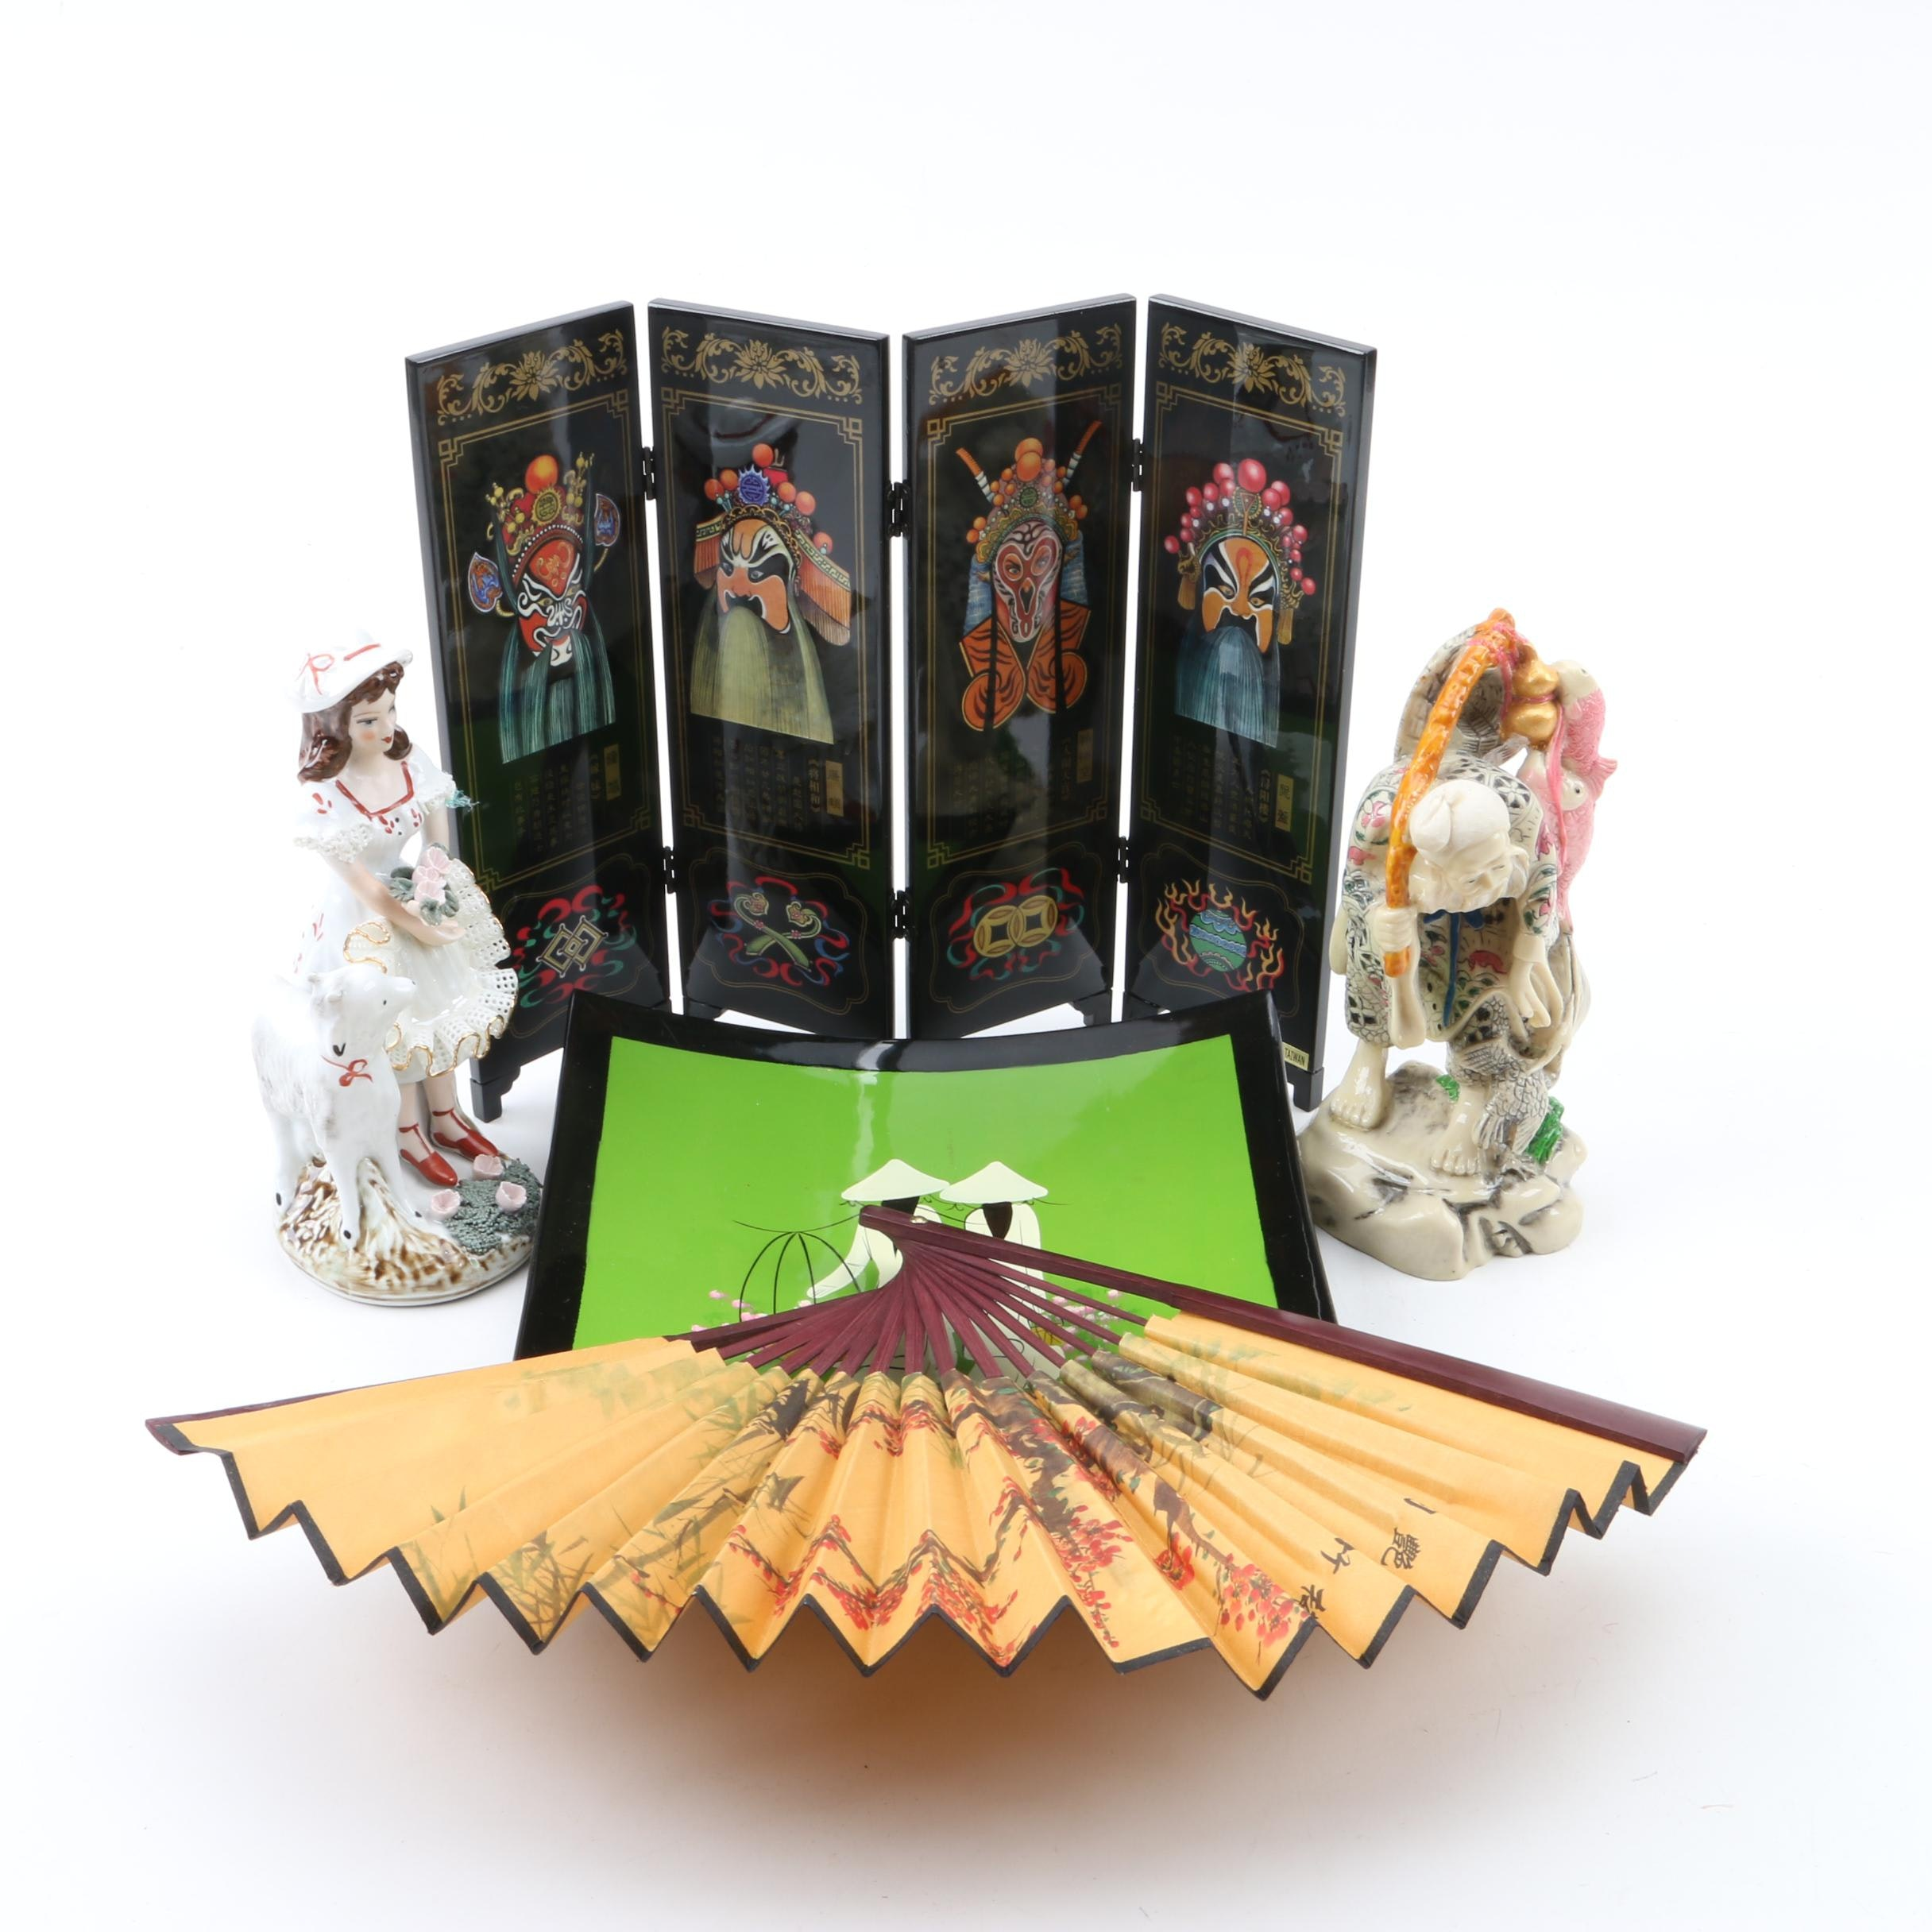 Ceramic Figurines with Decorative Fan and Folding Screen